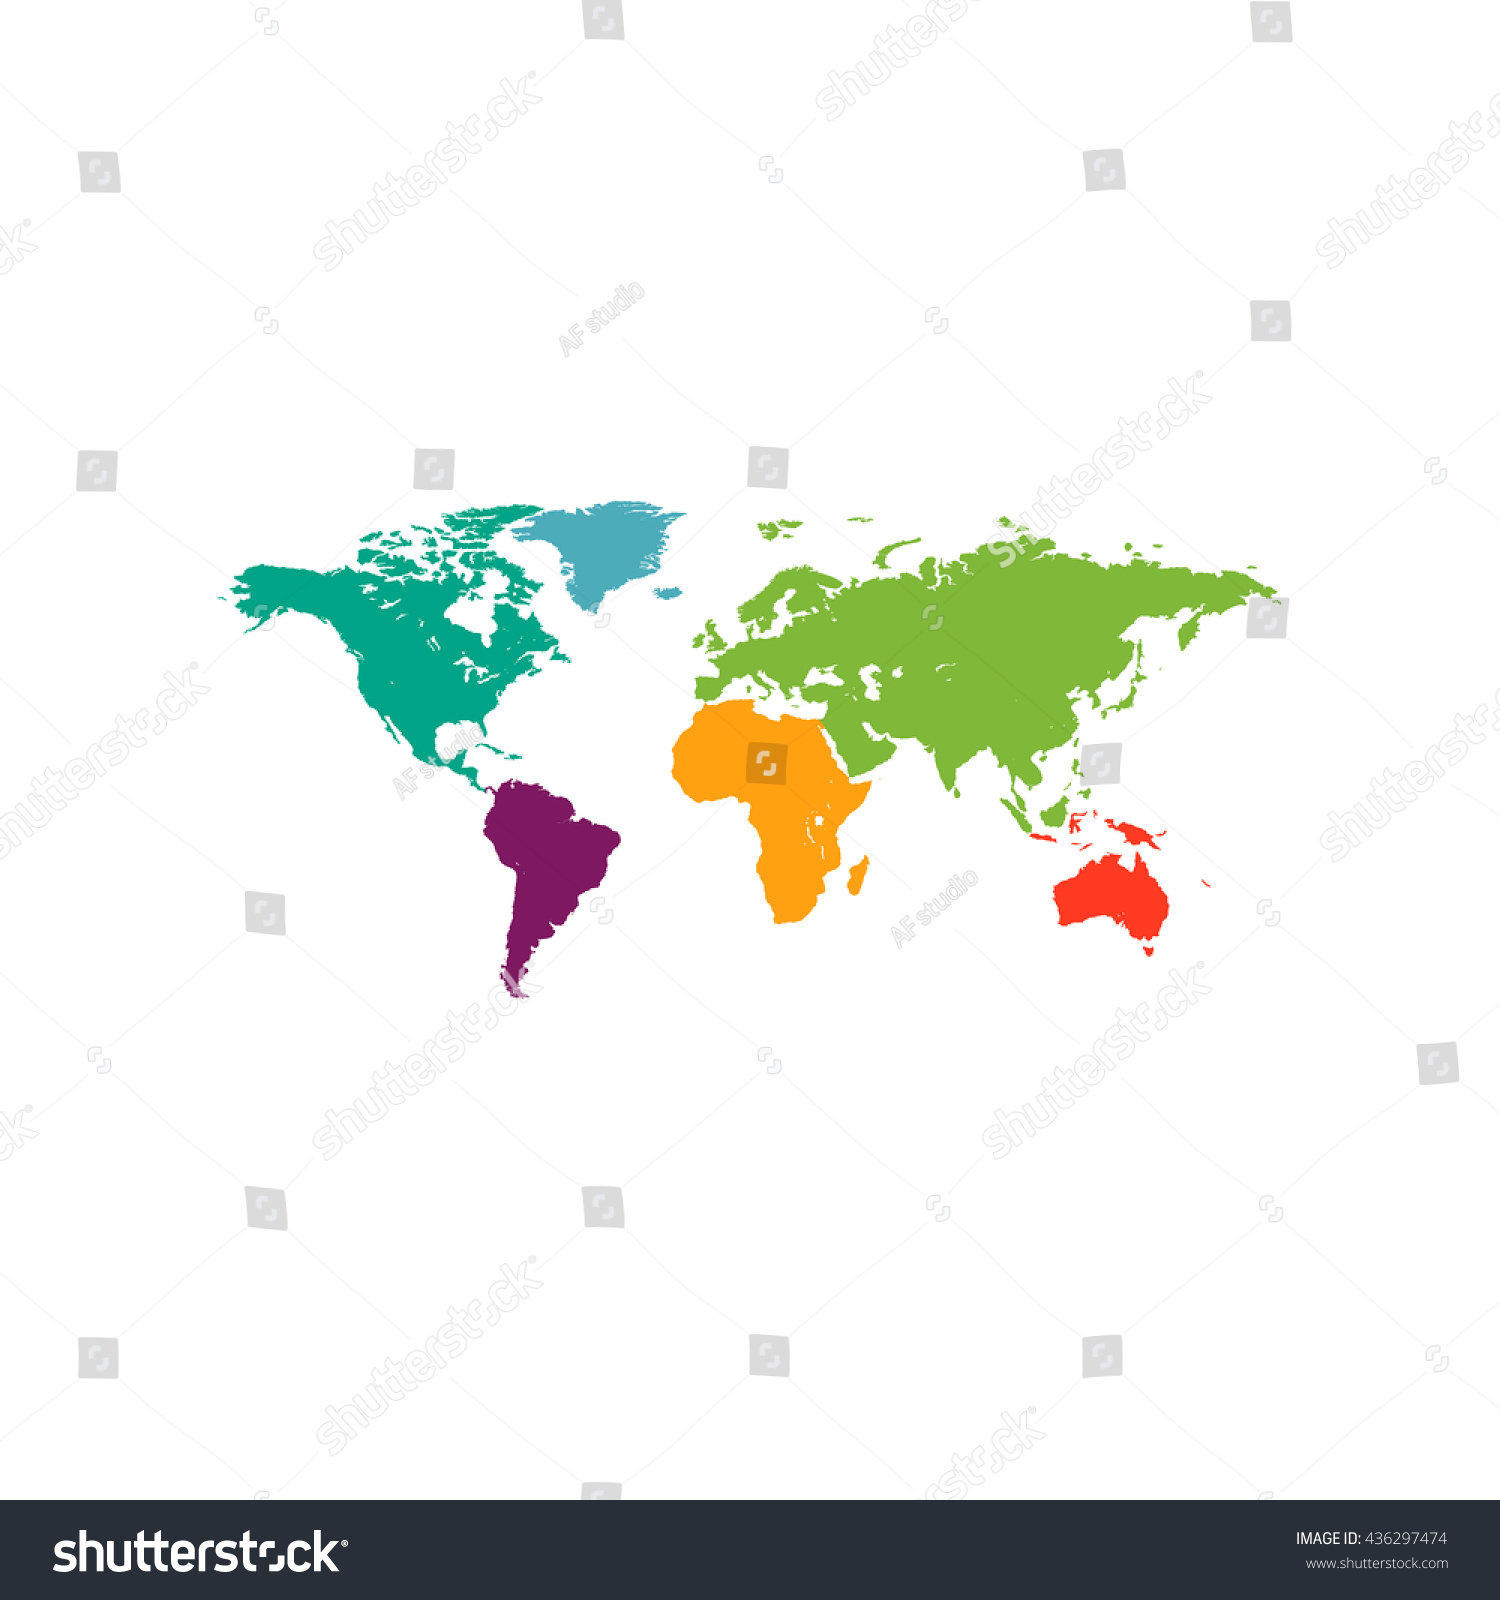 Map world color simple flat icon stock illustration 436297474 map of the world color simple flat icon on white background gumiabroncs Images